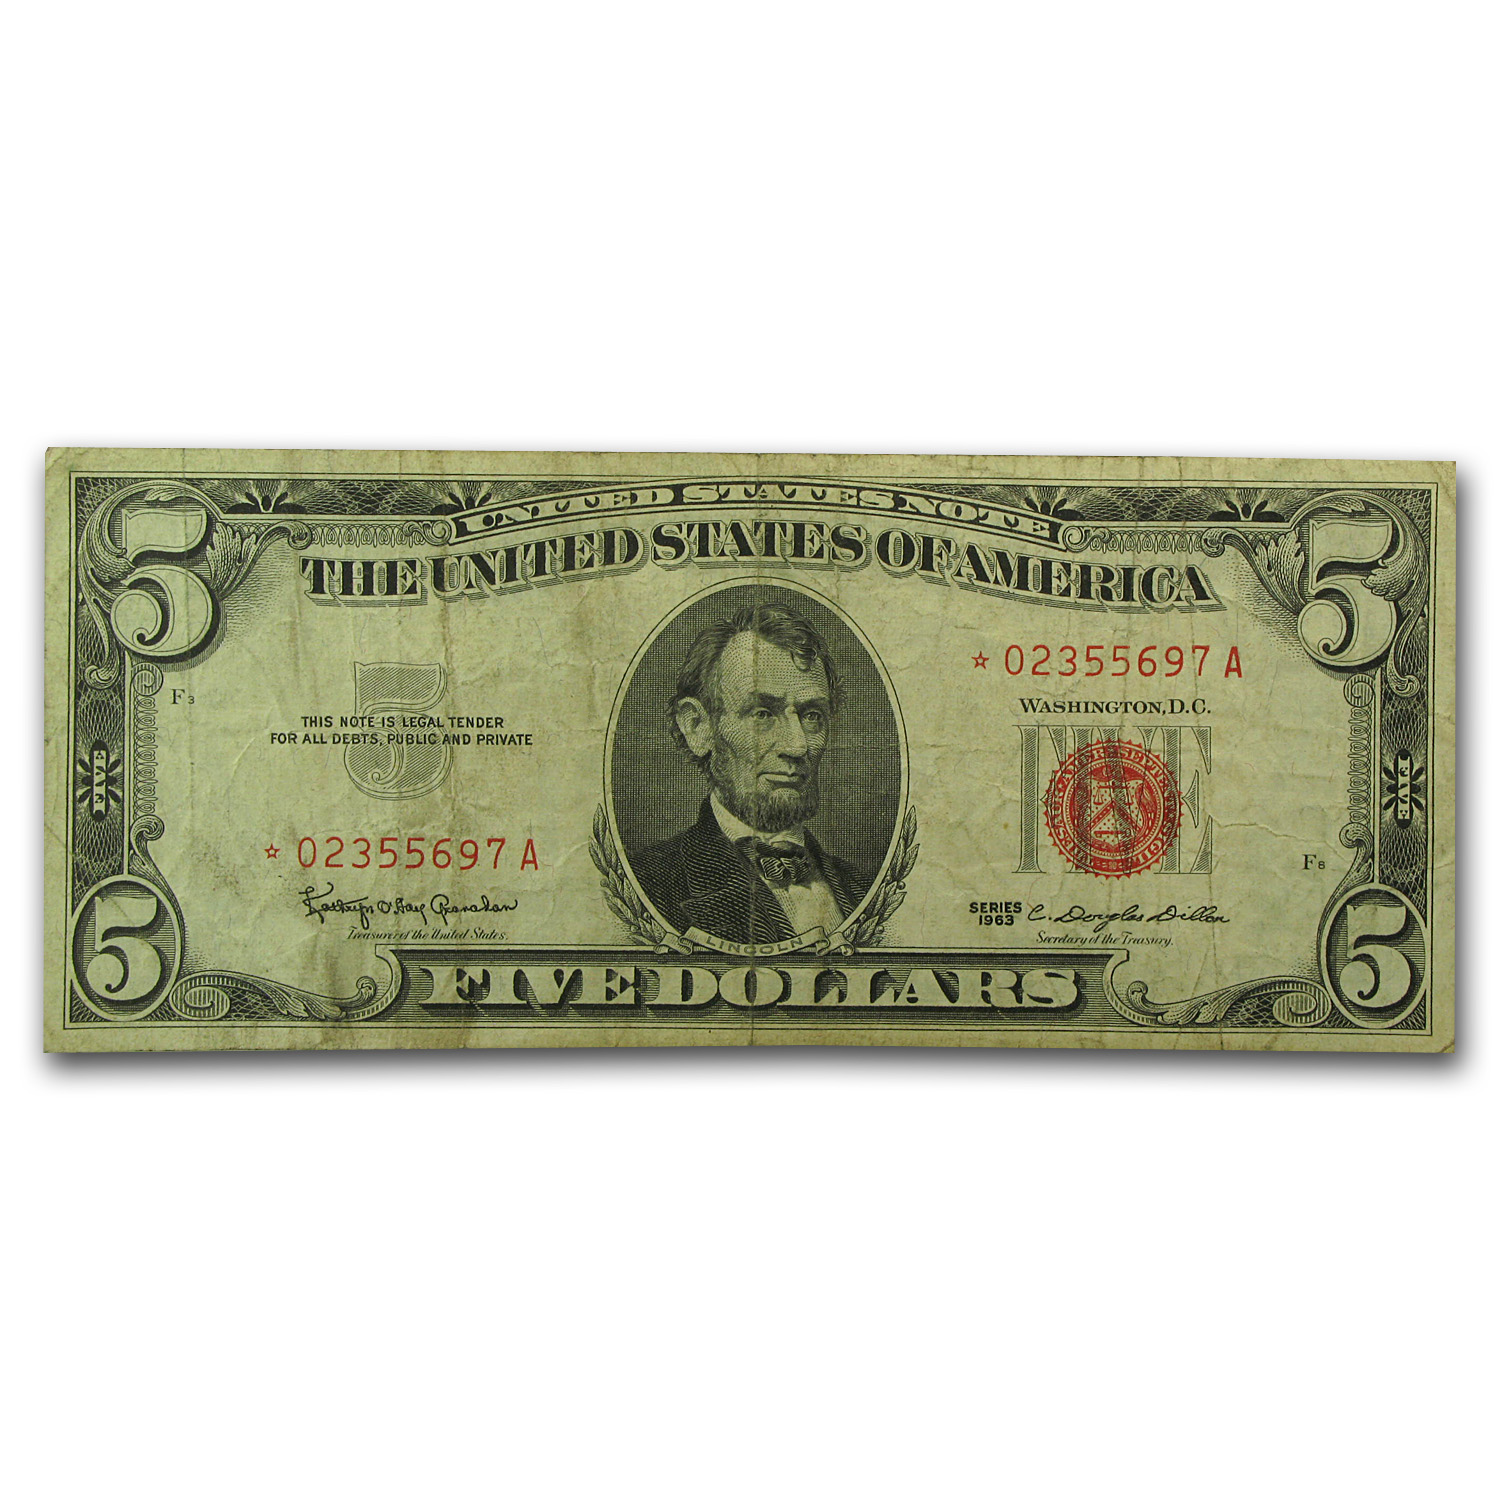 1963* $5.00 USN (Red Seal) Star Note - Fine